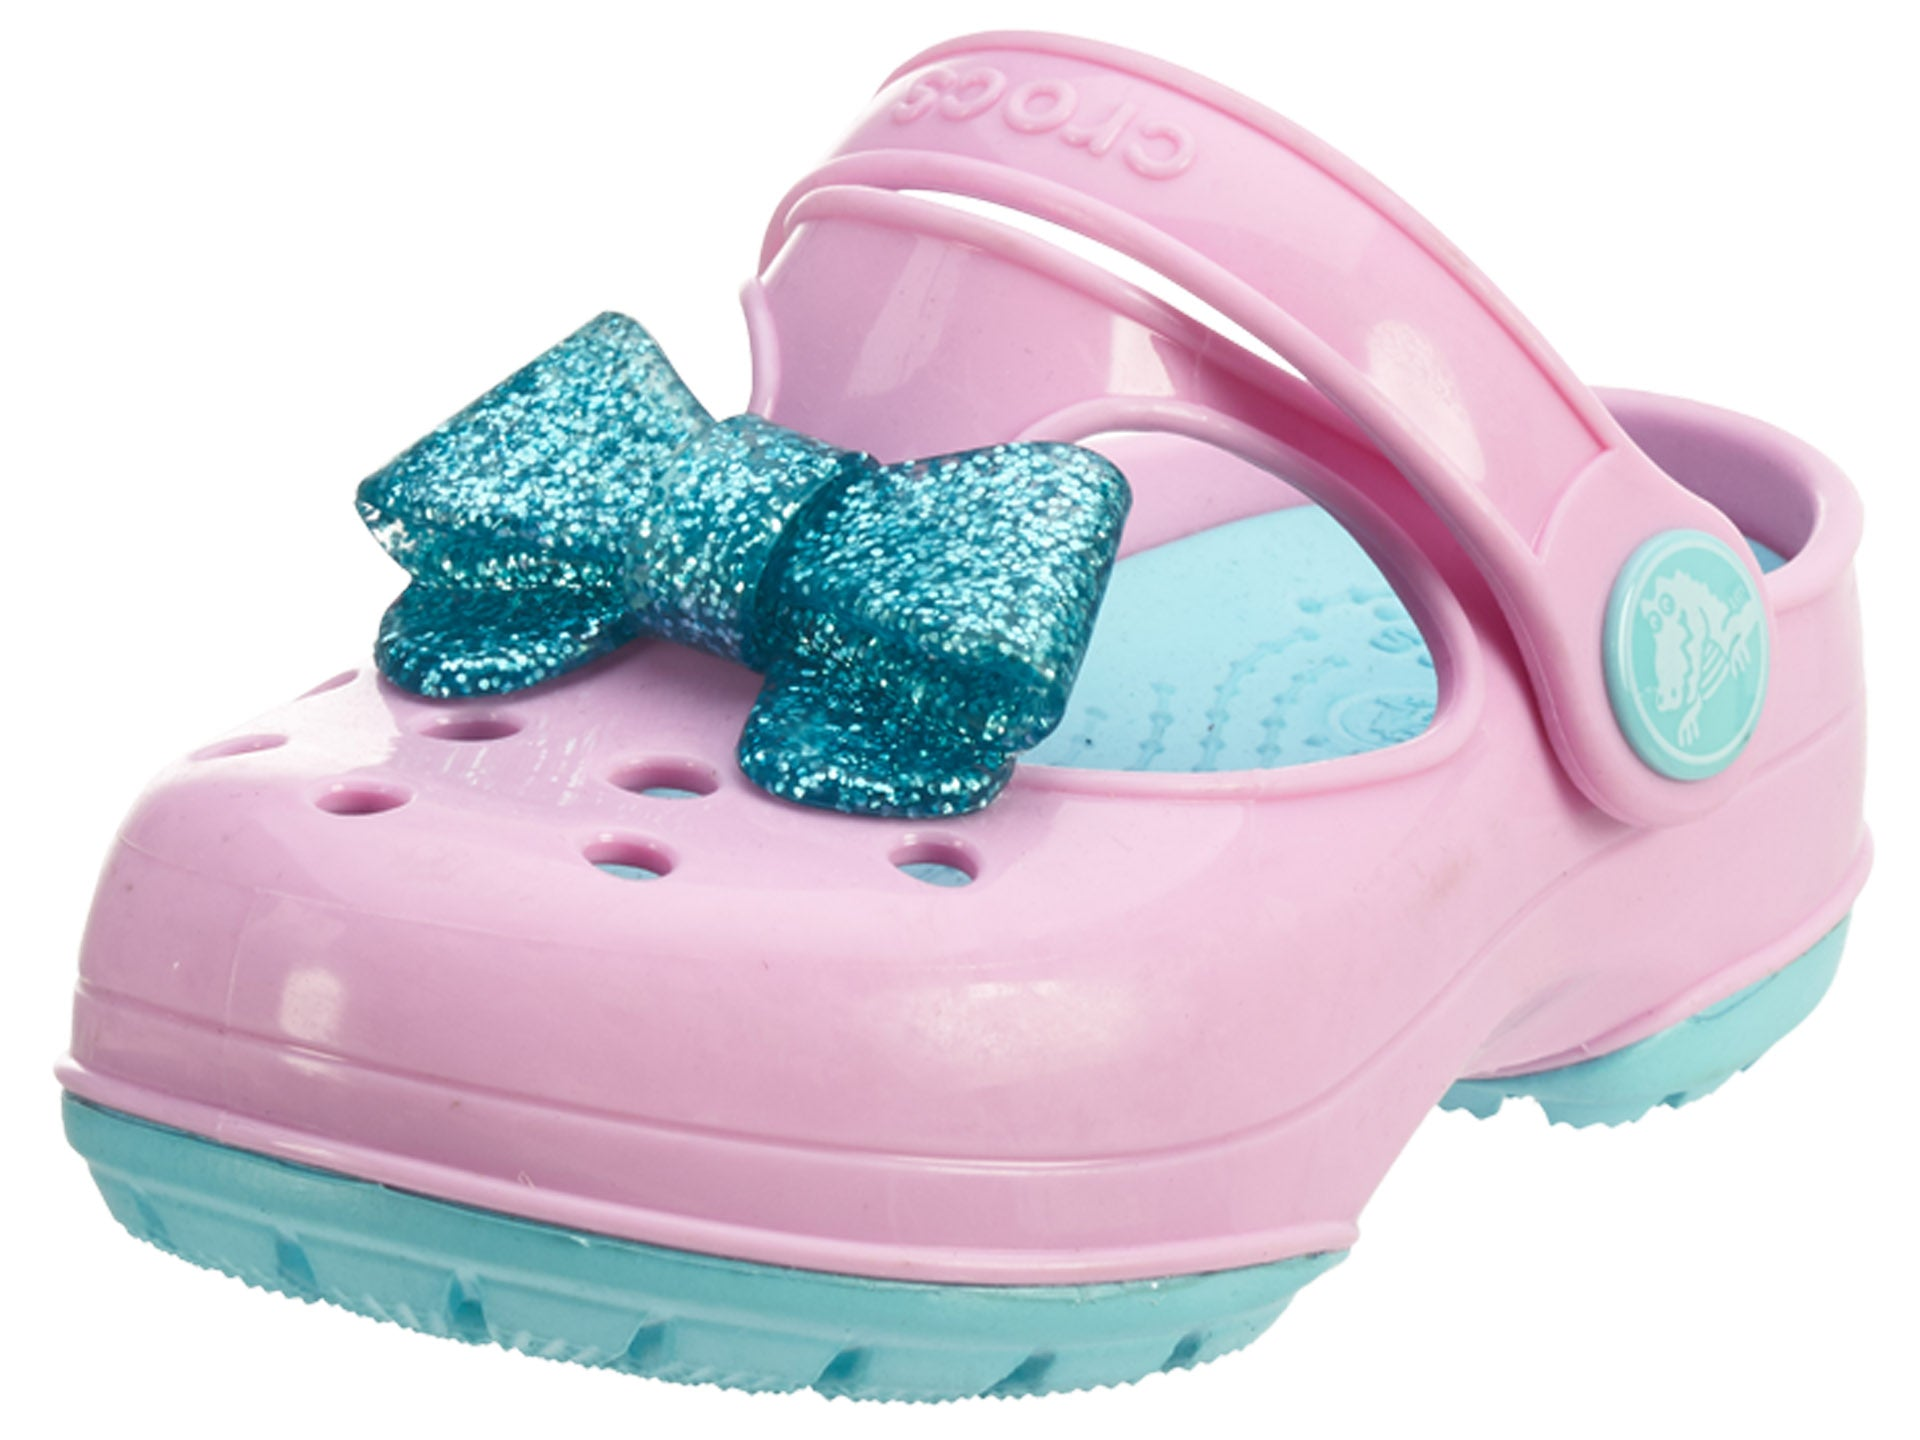 2d3a53c4407a32 Crocs Carlie Gltter Bow Mj Ps Toddlers Style   203452 – talkmoney730